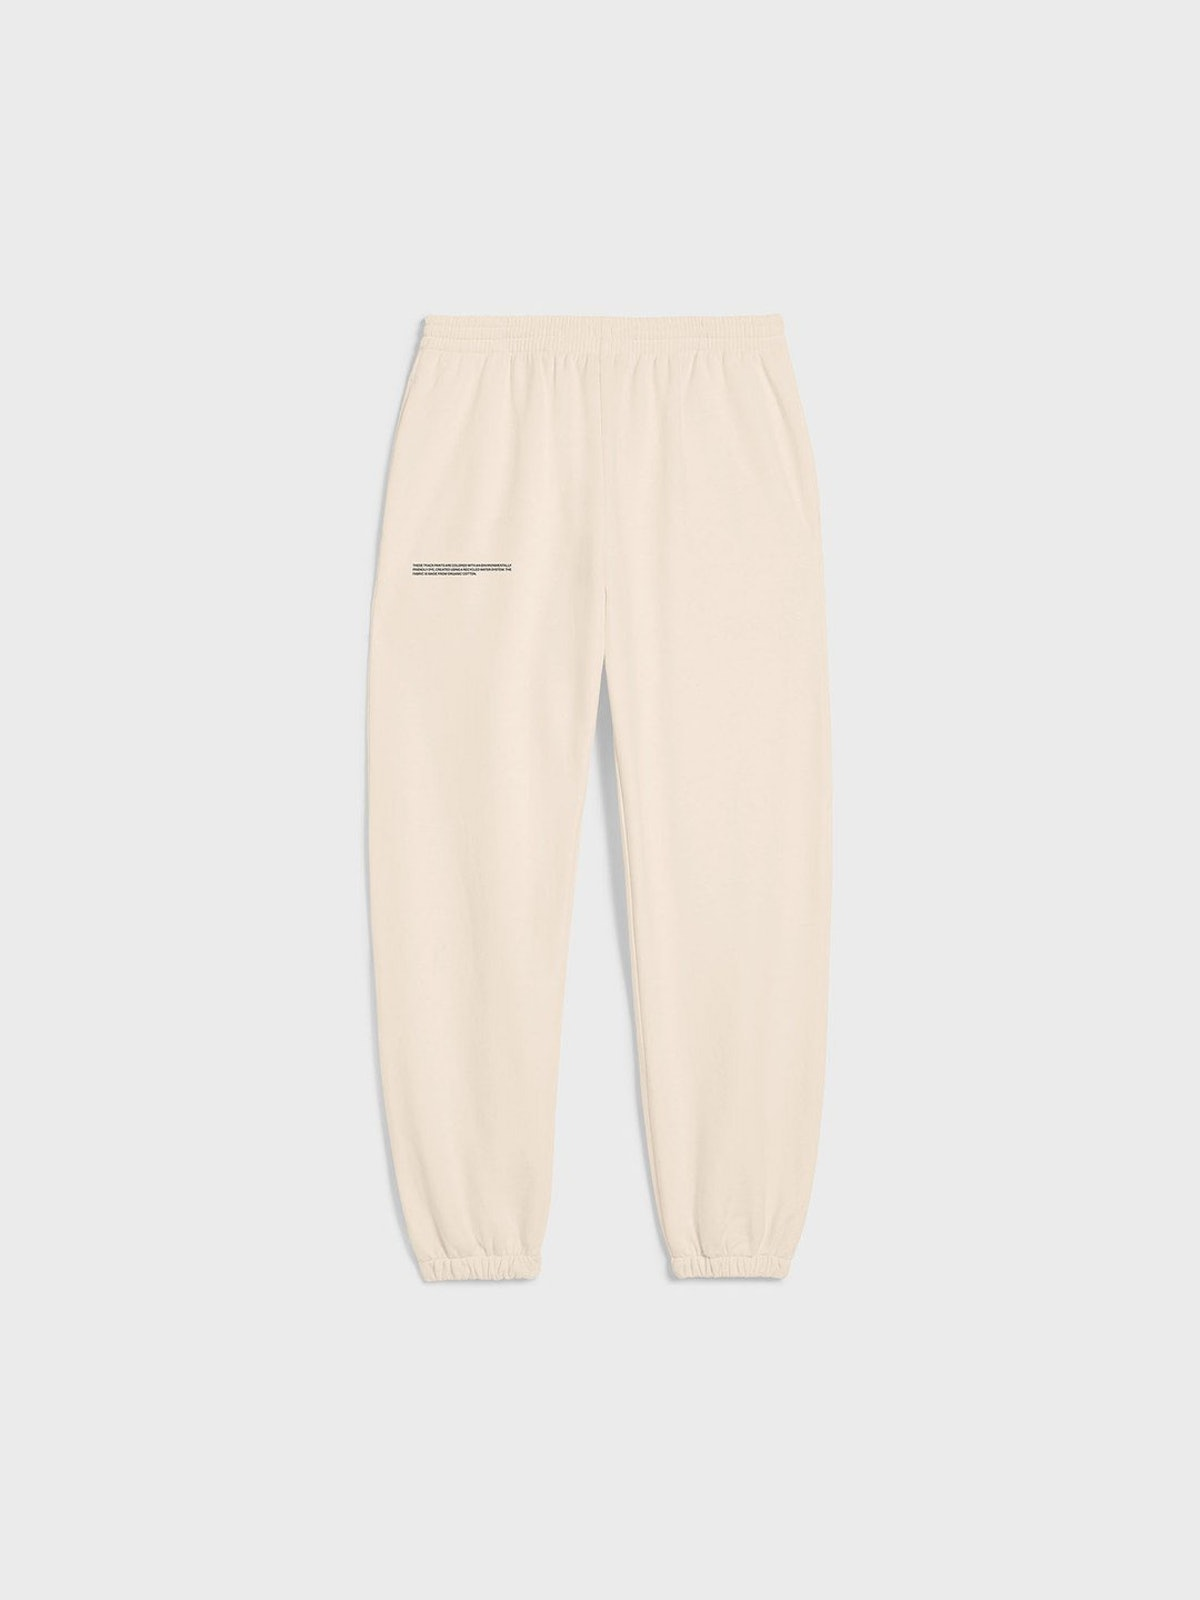 365 Track Pants in Sand from PANGAIA.